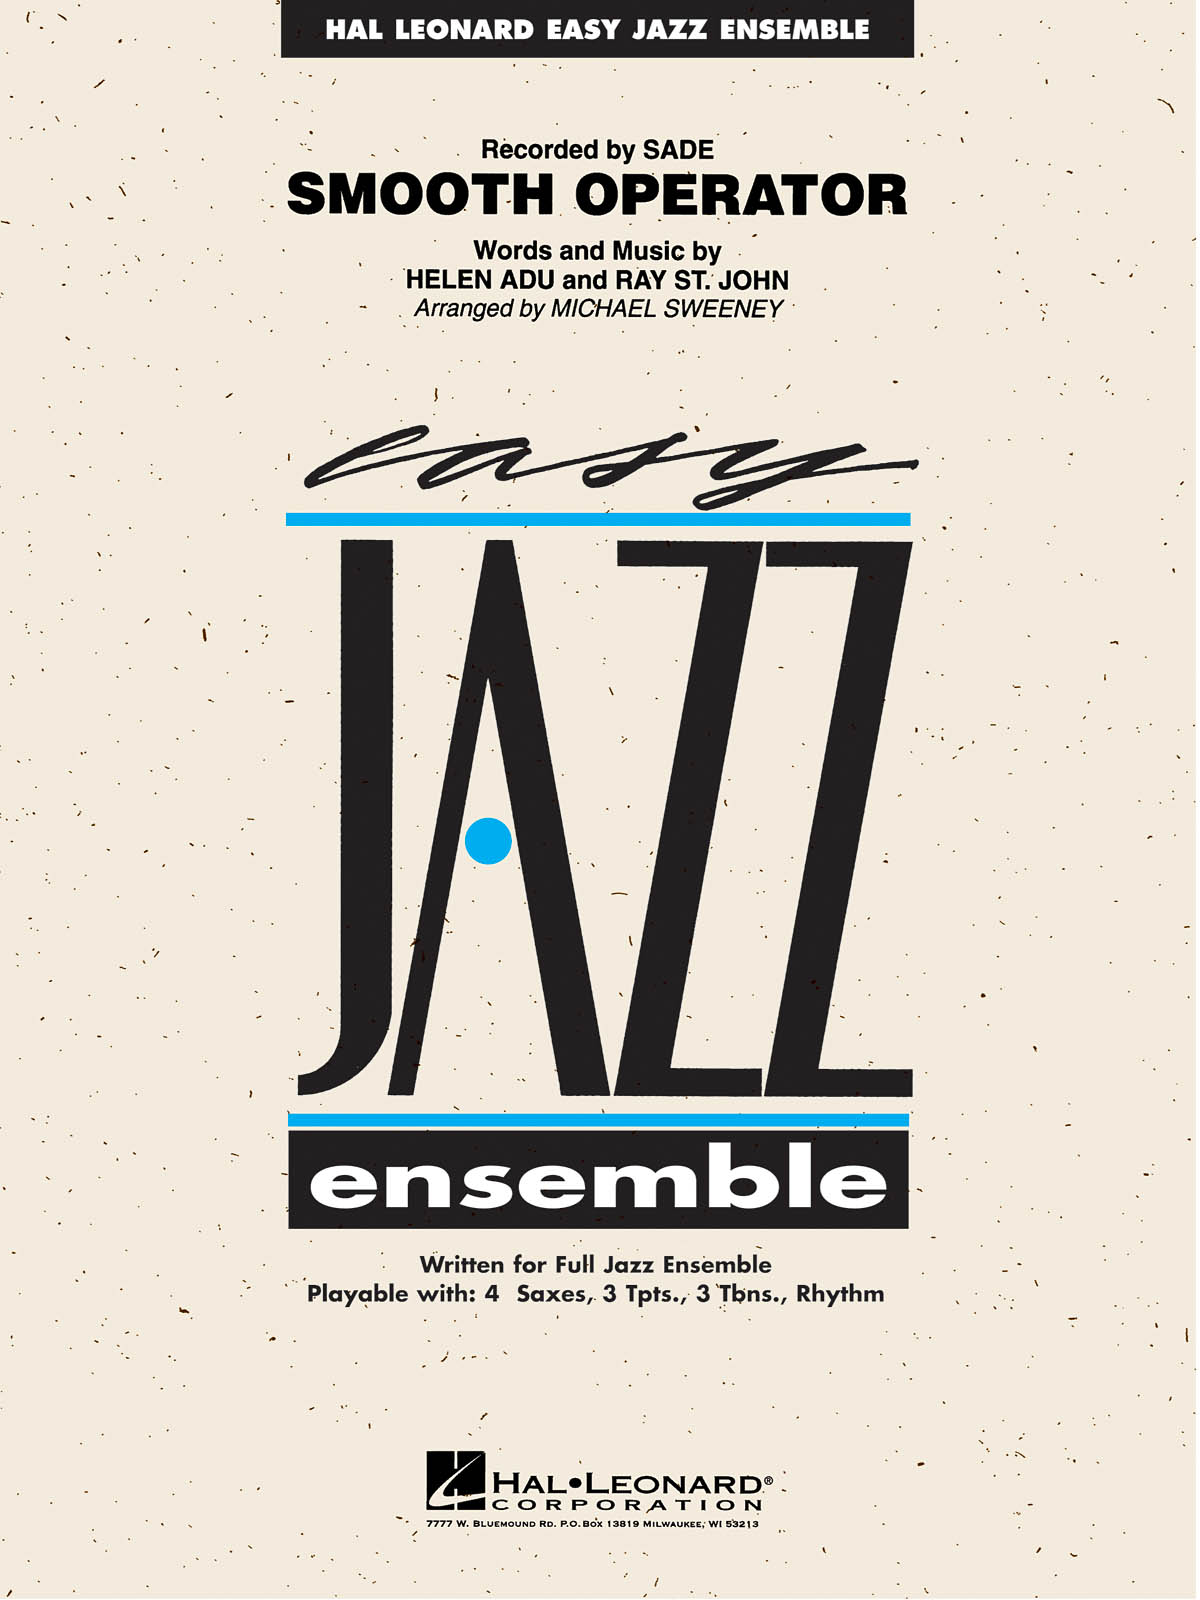 Smooth Operator: Easy Jazz Ensemble